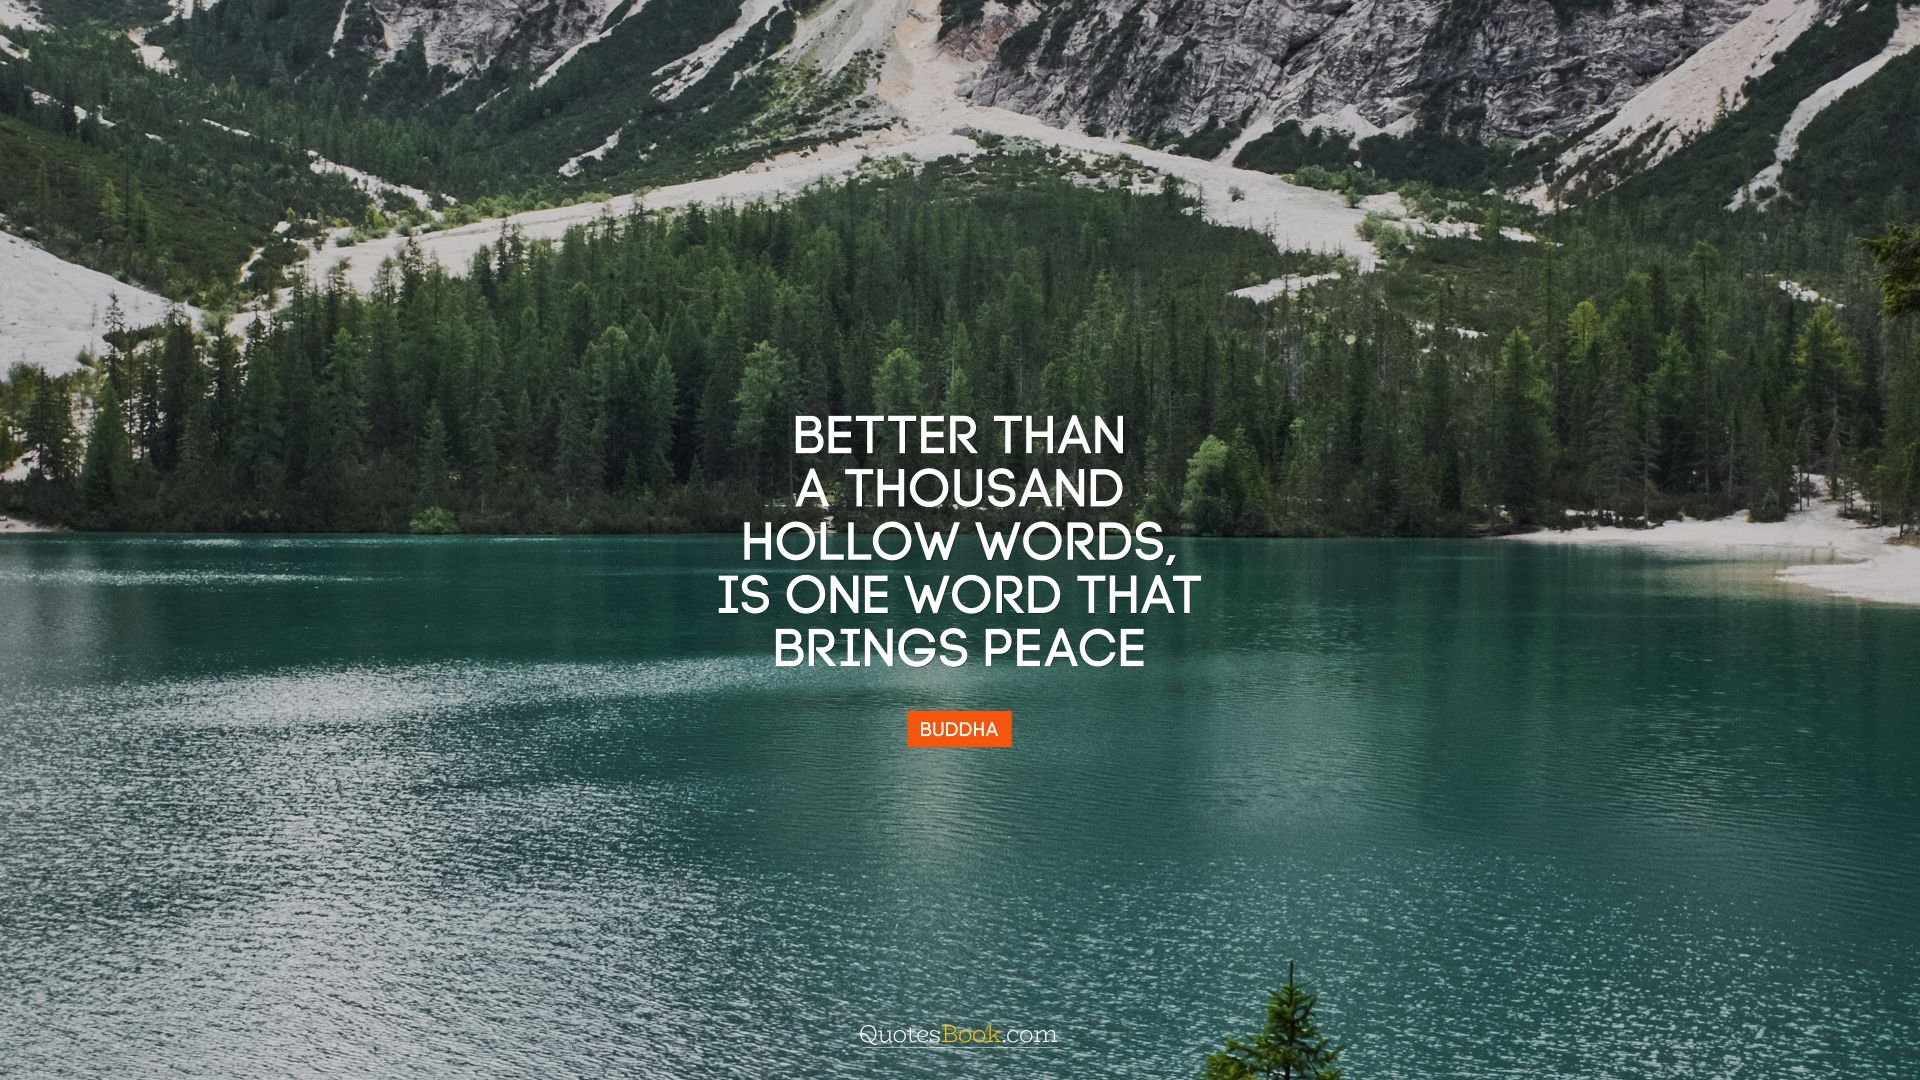 Better than a thousand hollow words, is one word that brings peace. - Quote by Buddha